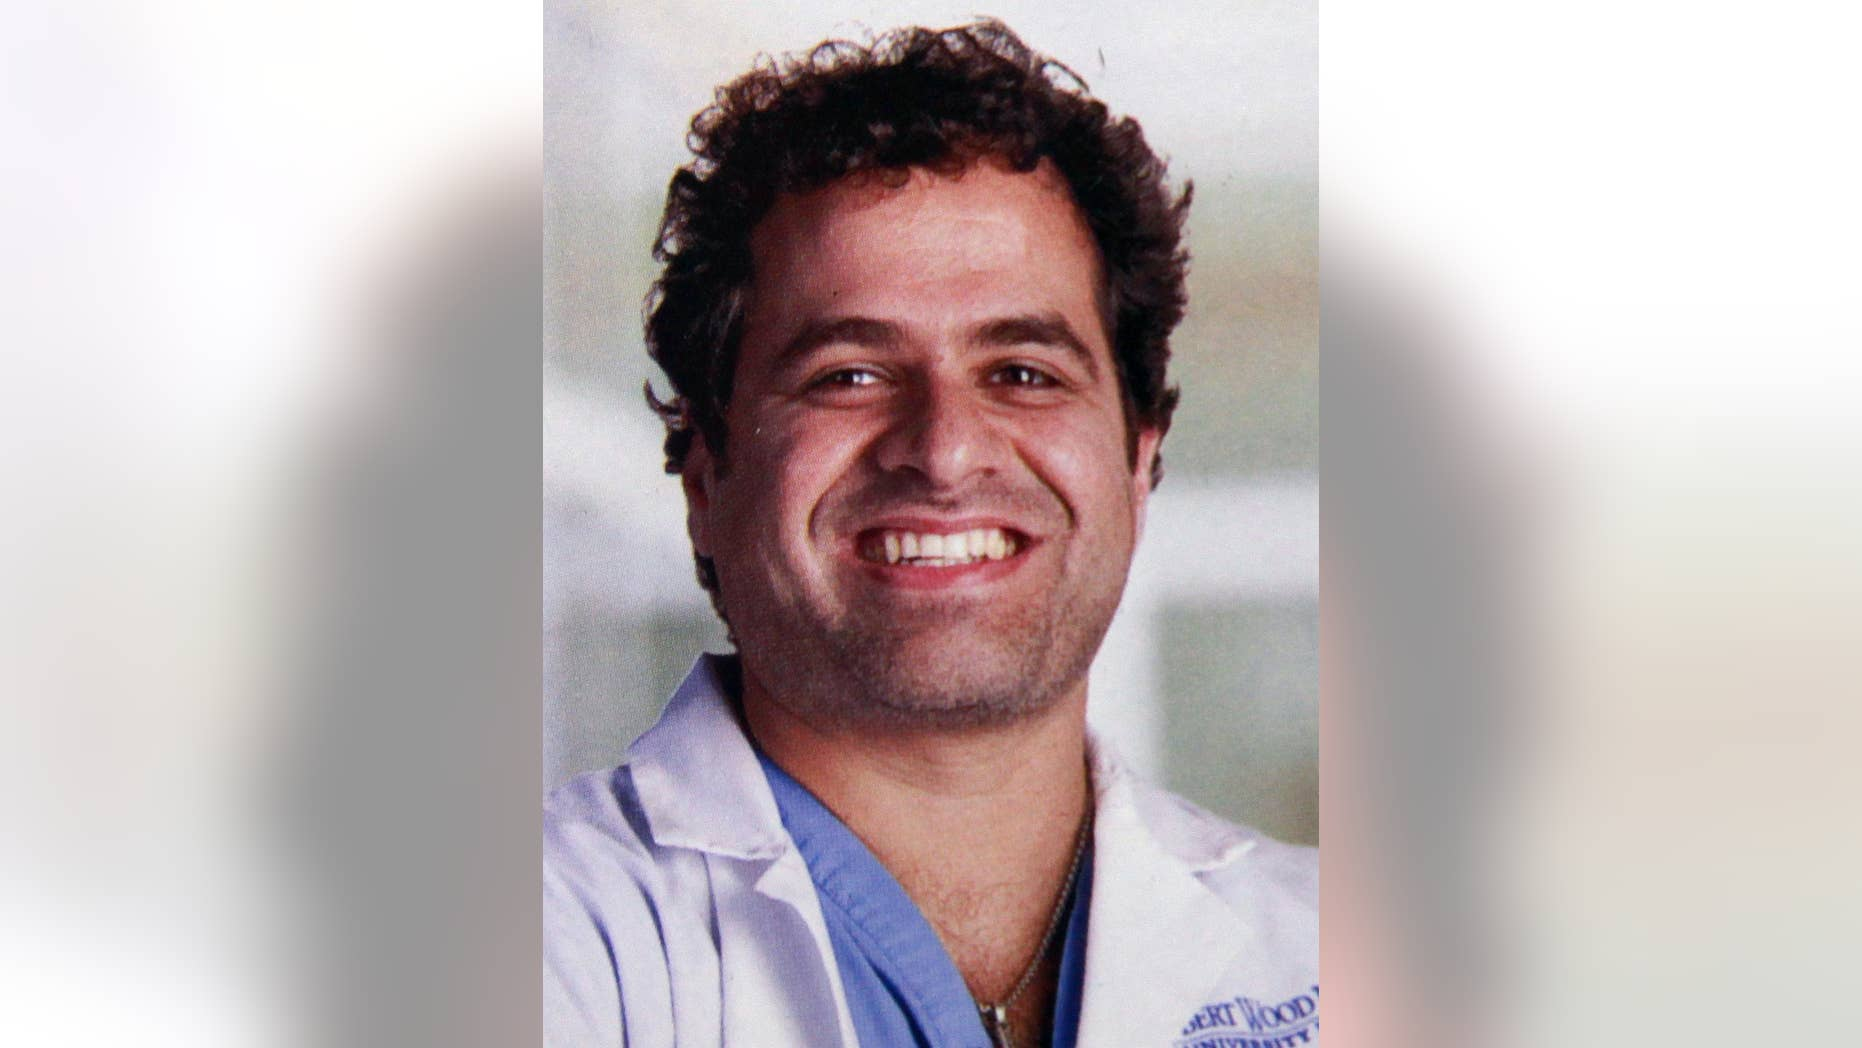 A Manhattan judge has ruled New Jersey cardiologist Dr. Zyad Younan, 44, is off the hook for the $135,000 tab he racked up at Scores strip club. (Robert Wood Johnson University Hospital)